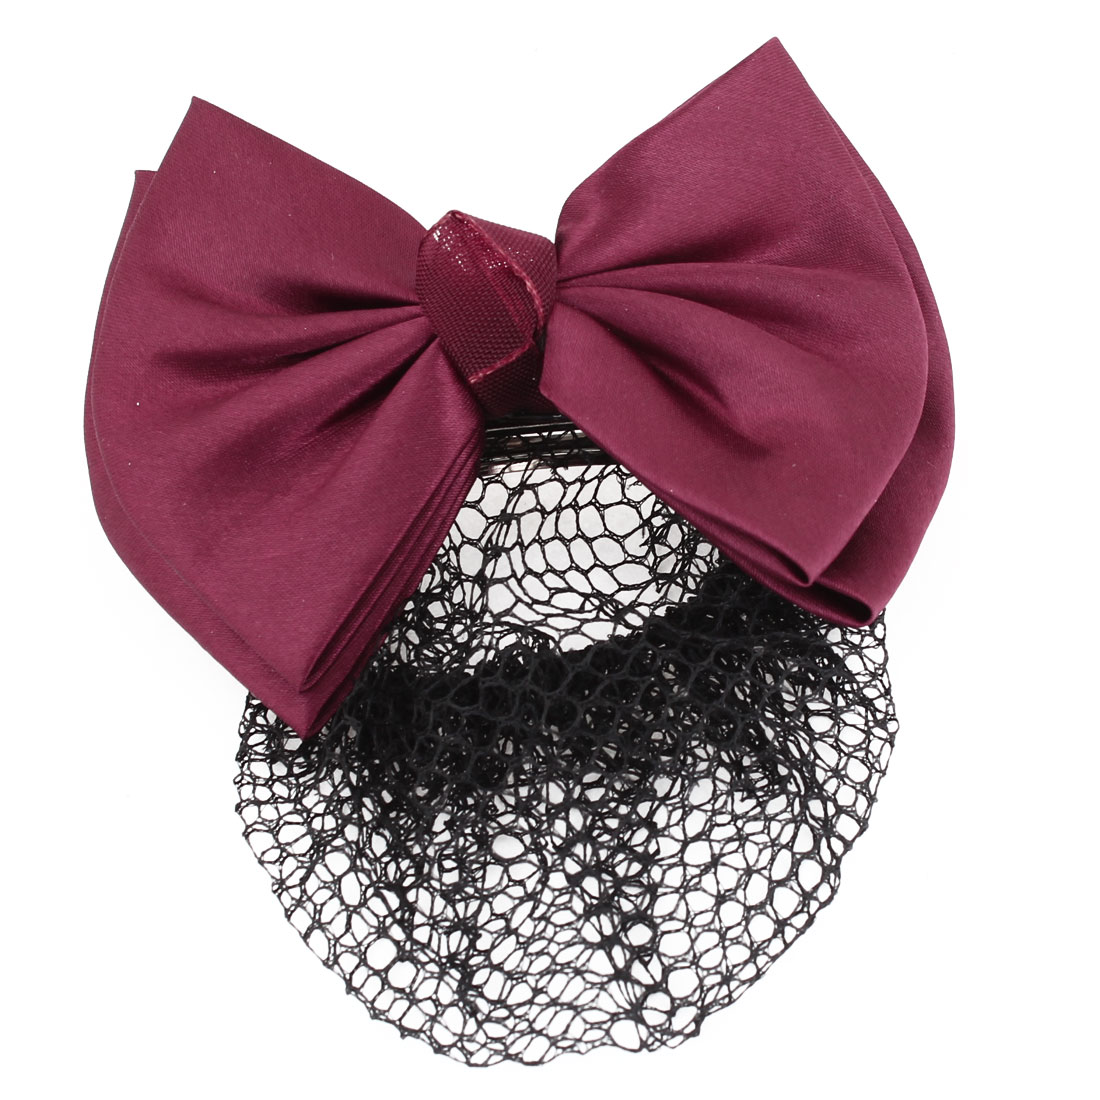 Lady Burgundy Headdress Bowtie Accent Elastic Band Hairclip Hairnet